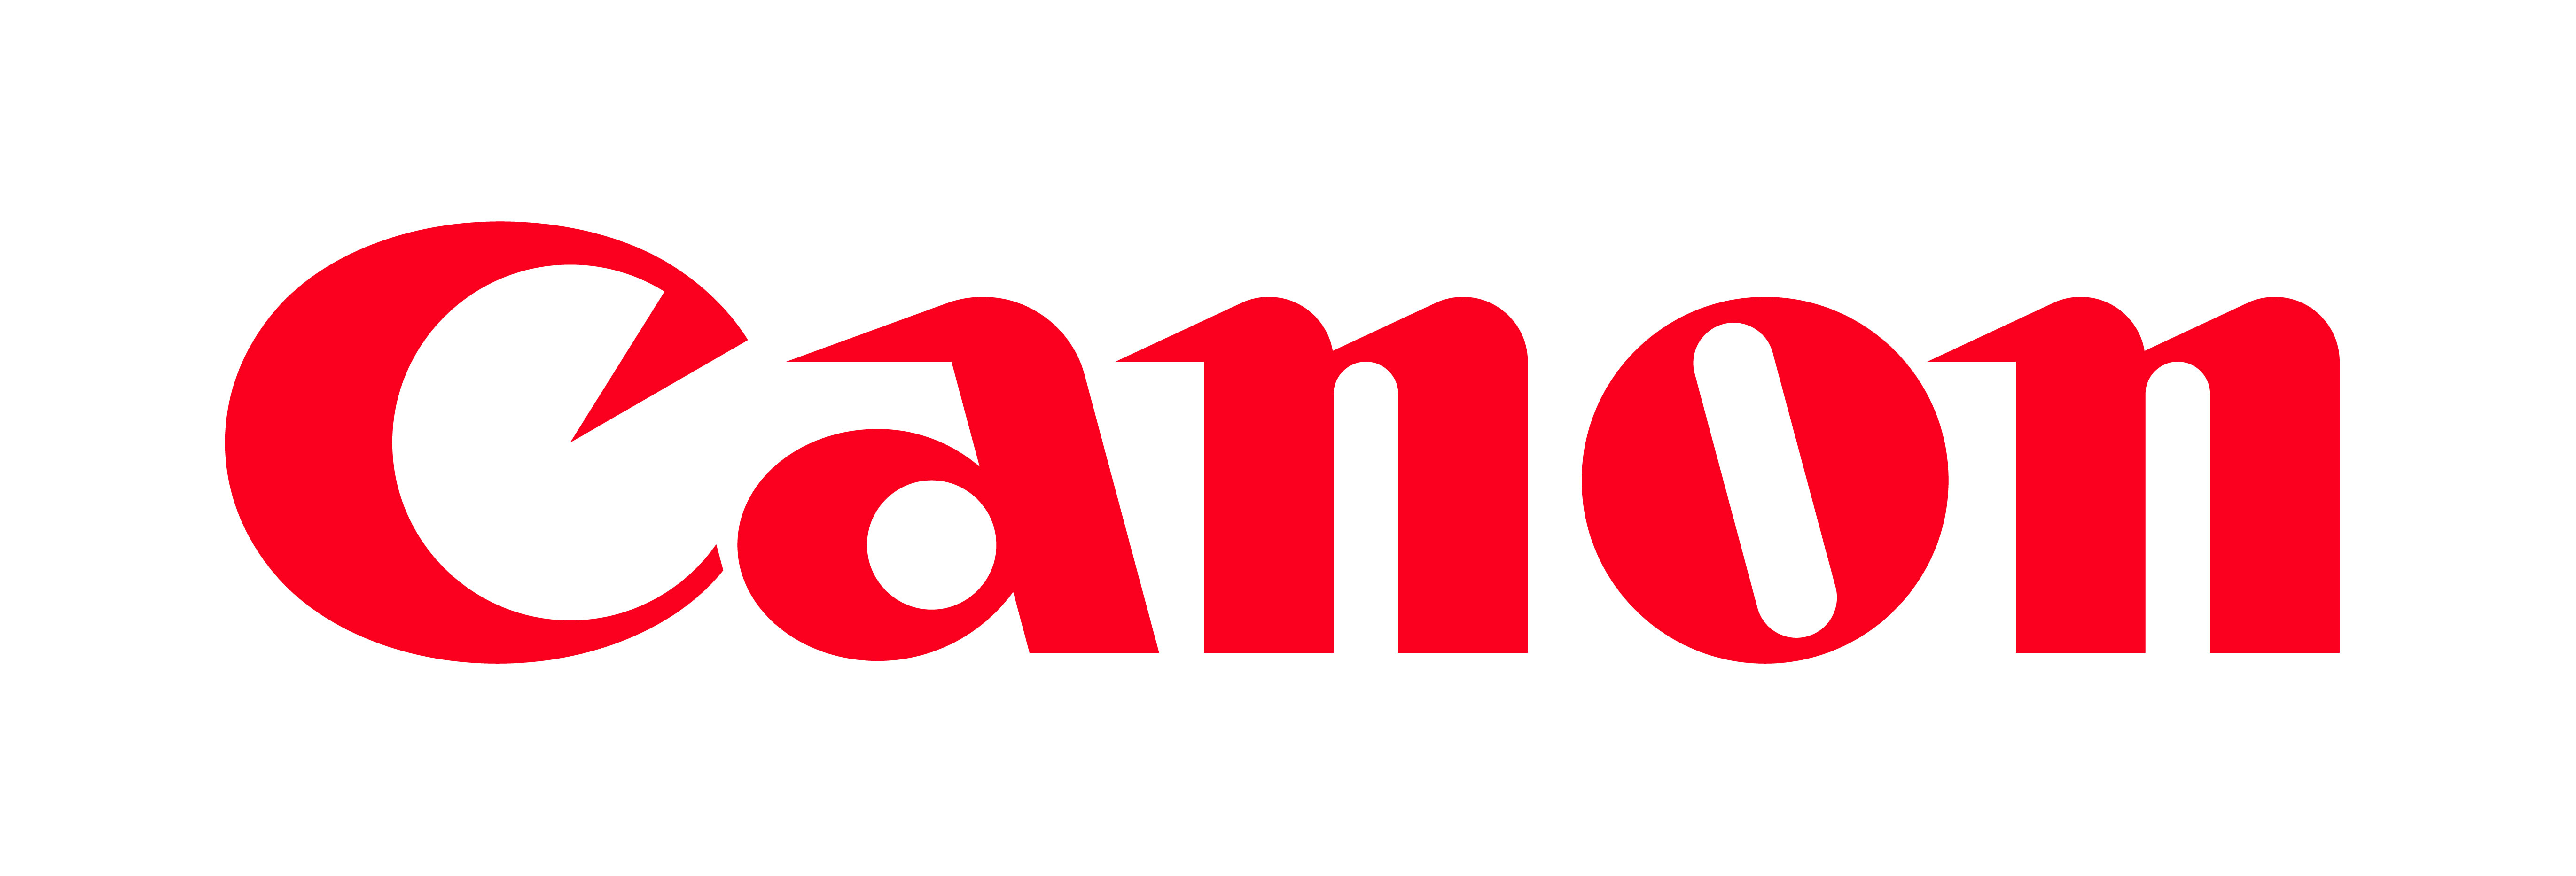 canon-logo-png-xl-download-high-resolution-5482